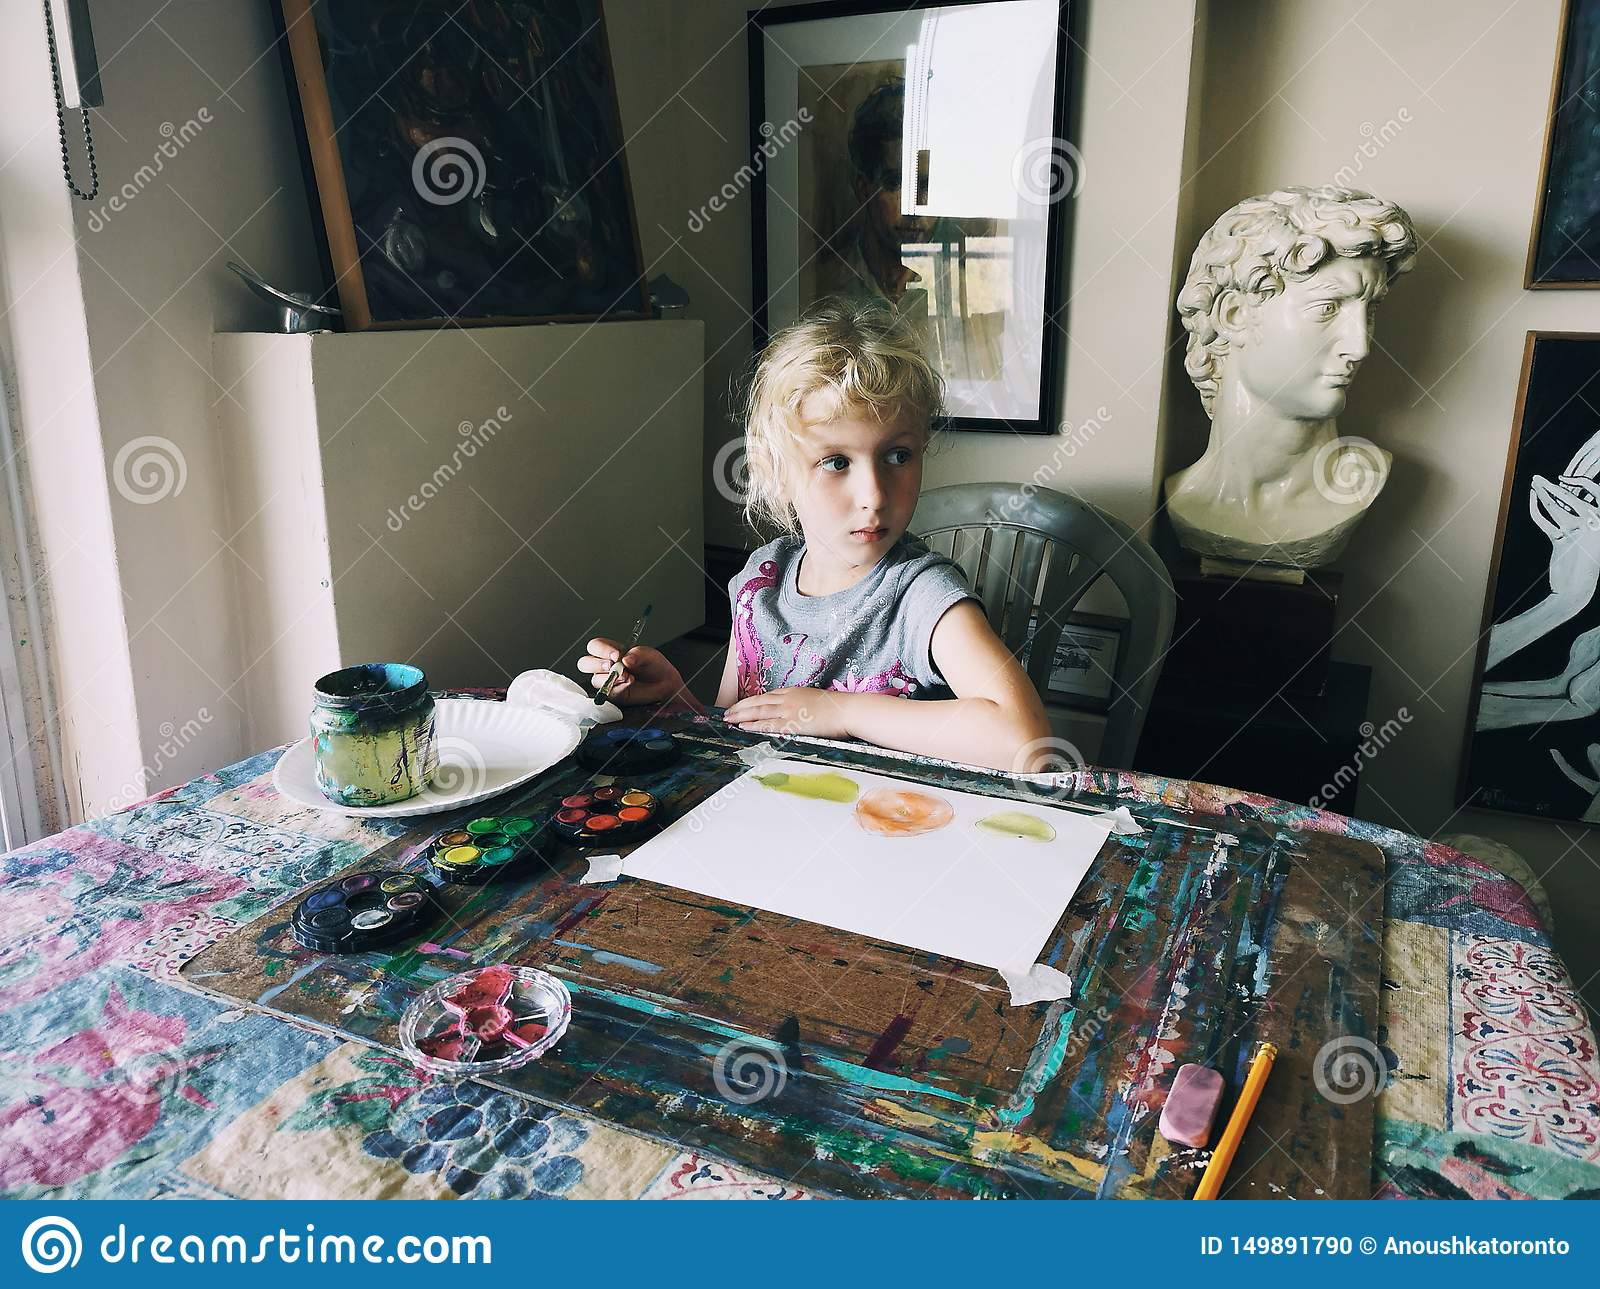 Caucasian preschooler girl sitting in art studio concentrated on painting fruits with brushes and water color paints